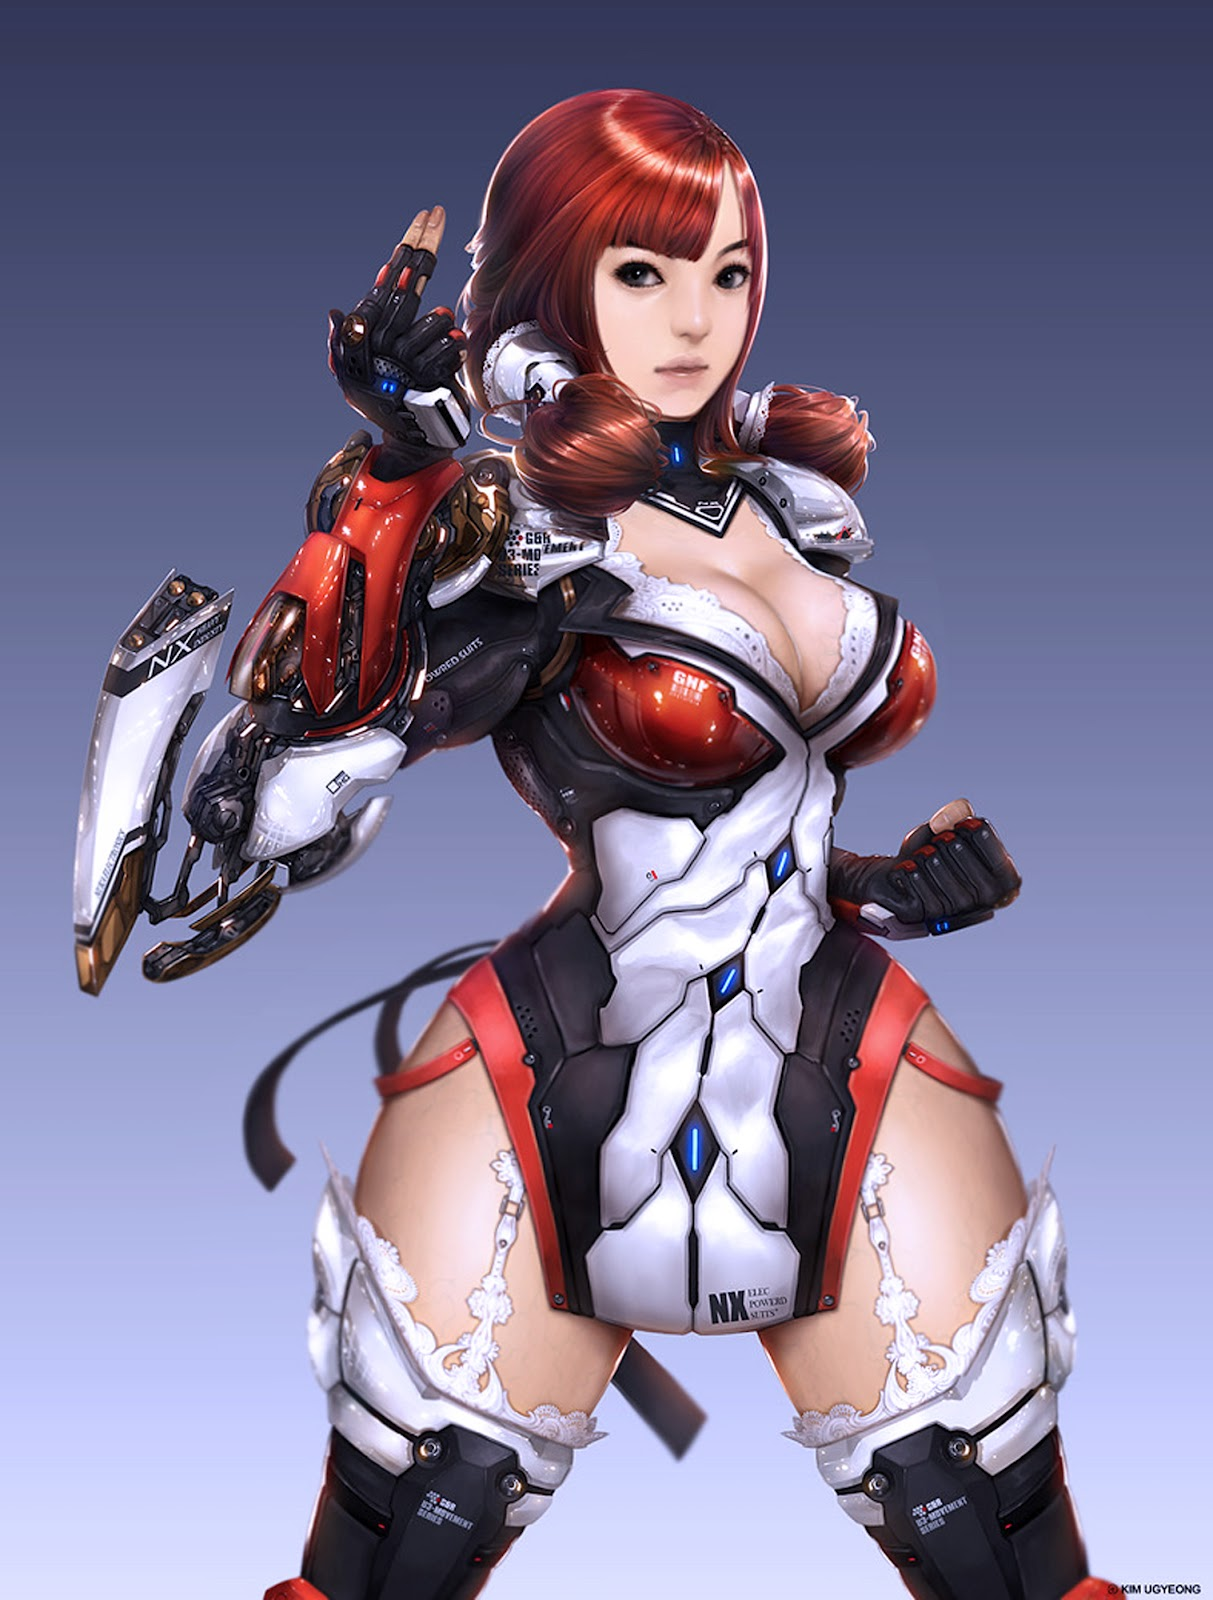 sexy anime space suit - photo #11